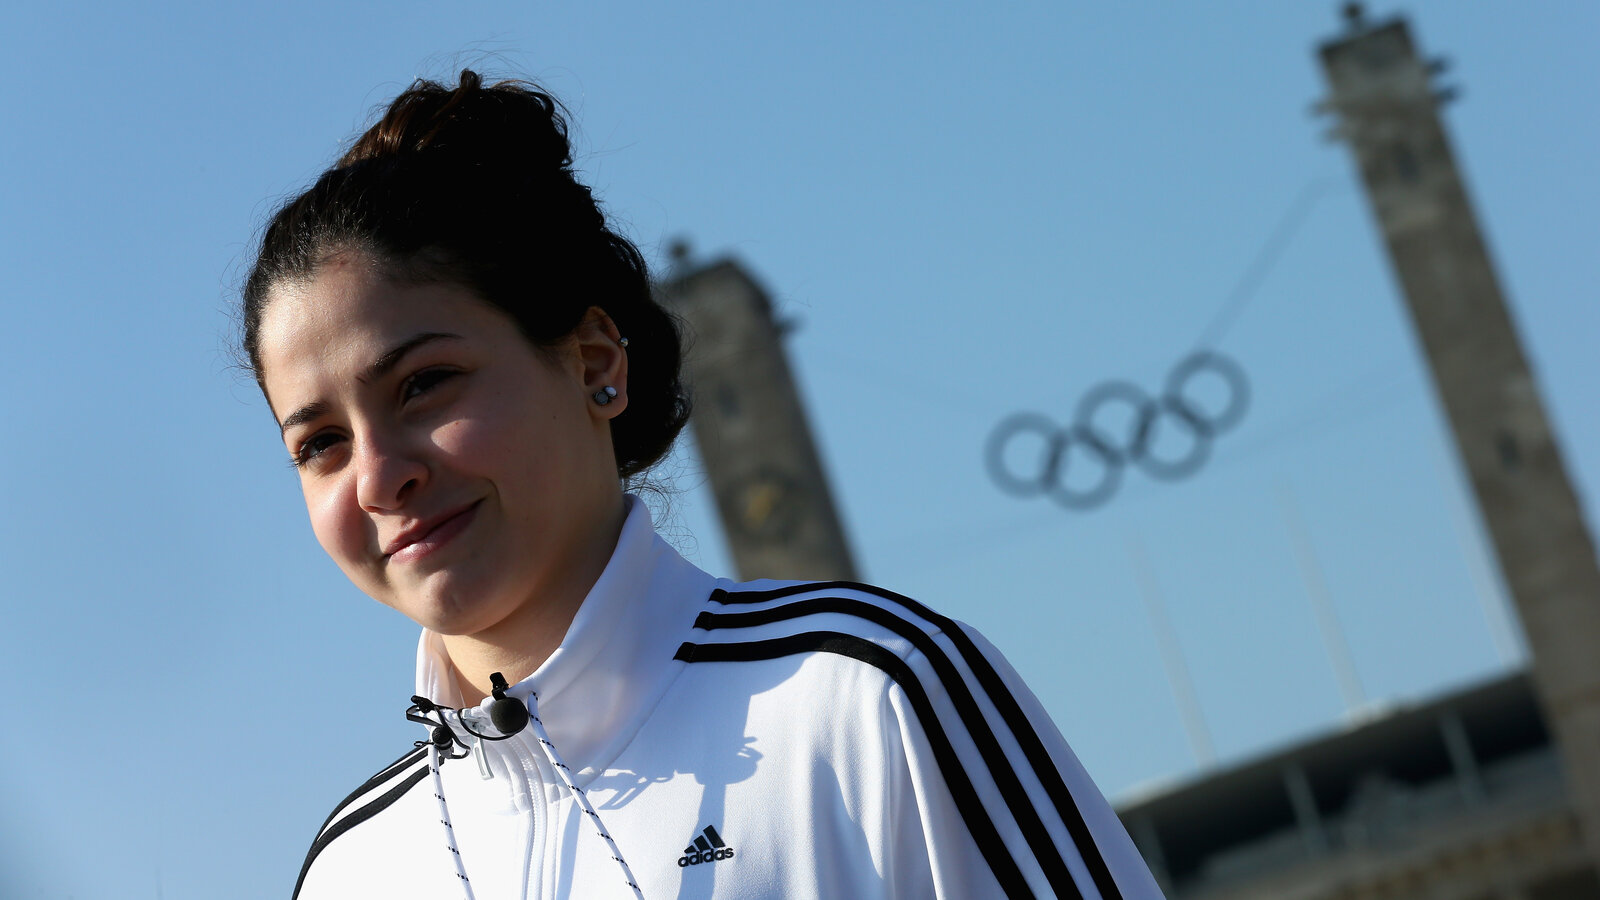 Yusra Mardini visits the Olympiapark Berlin on March 9. The 18-year-old Syrian refugee hopes to qualify for the Rio Olympics as a swimmer on the refugee team.